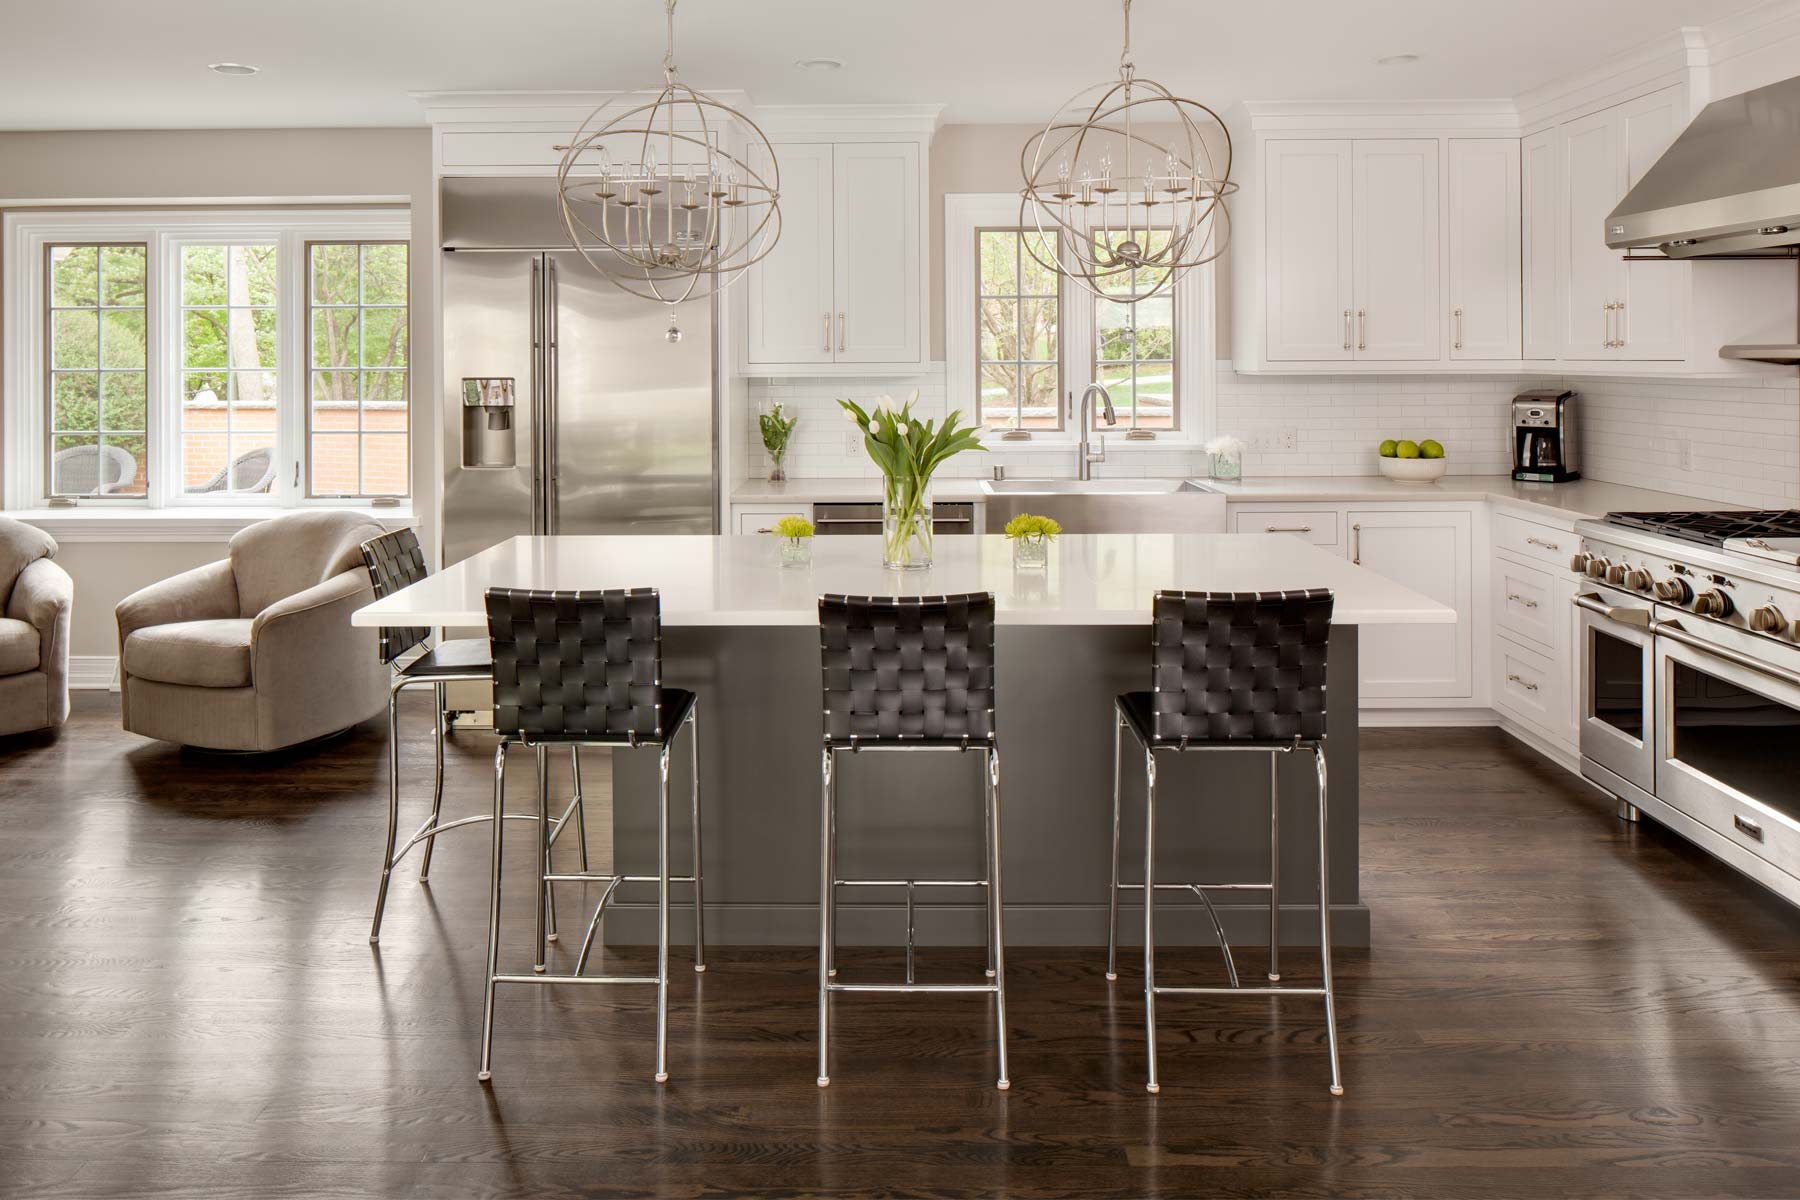 Milwaukee Contractors Will Help You With The Kitchen Updates